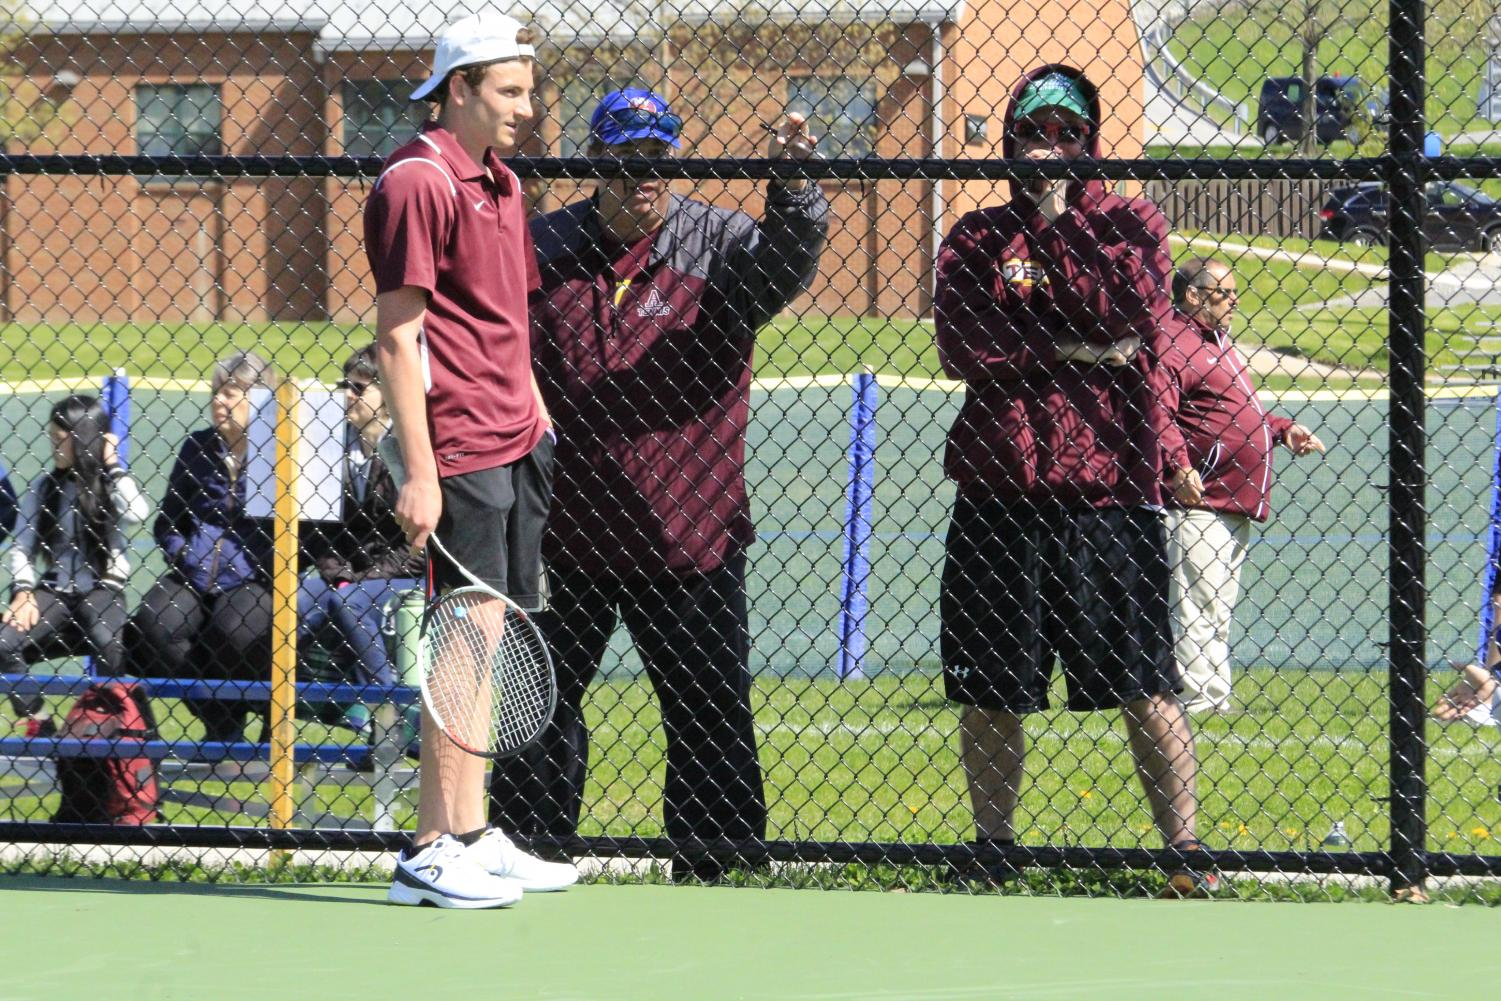 Senior+Casey+Raspoli+talks+to+Coach+Eric+Hovan+about+the+set+he+previously++played.+